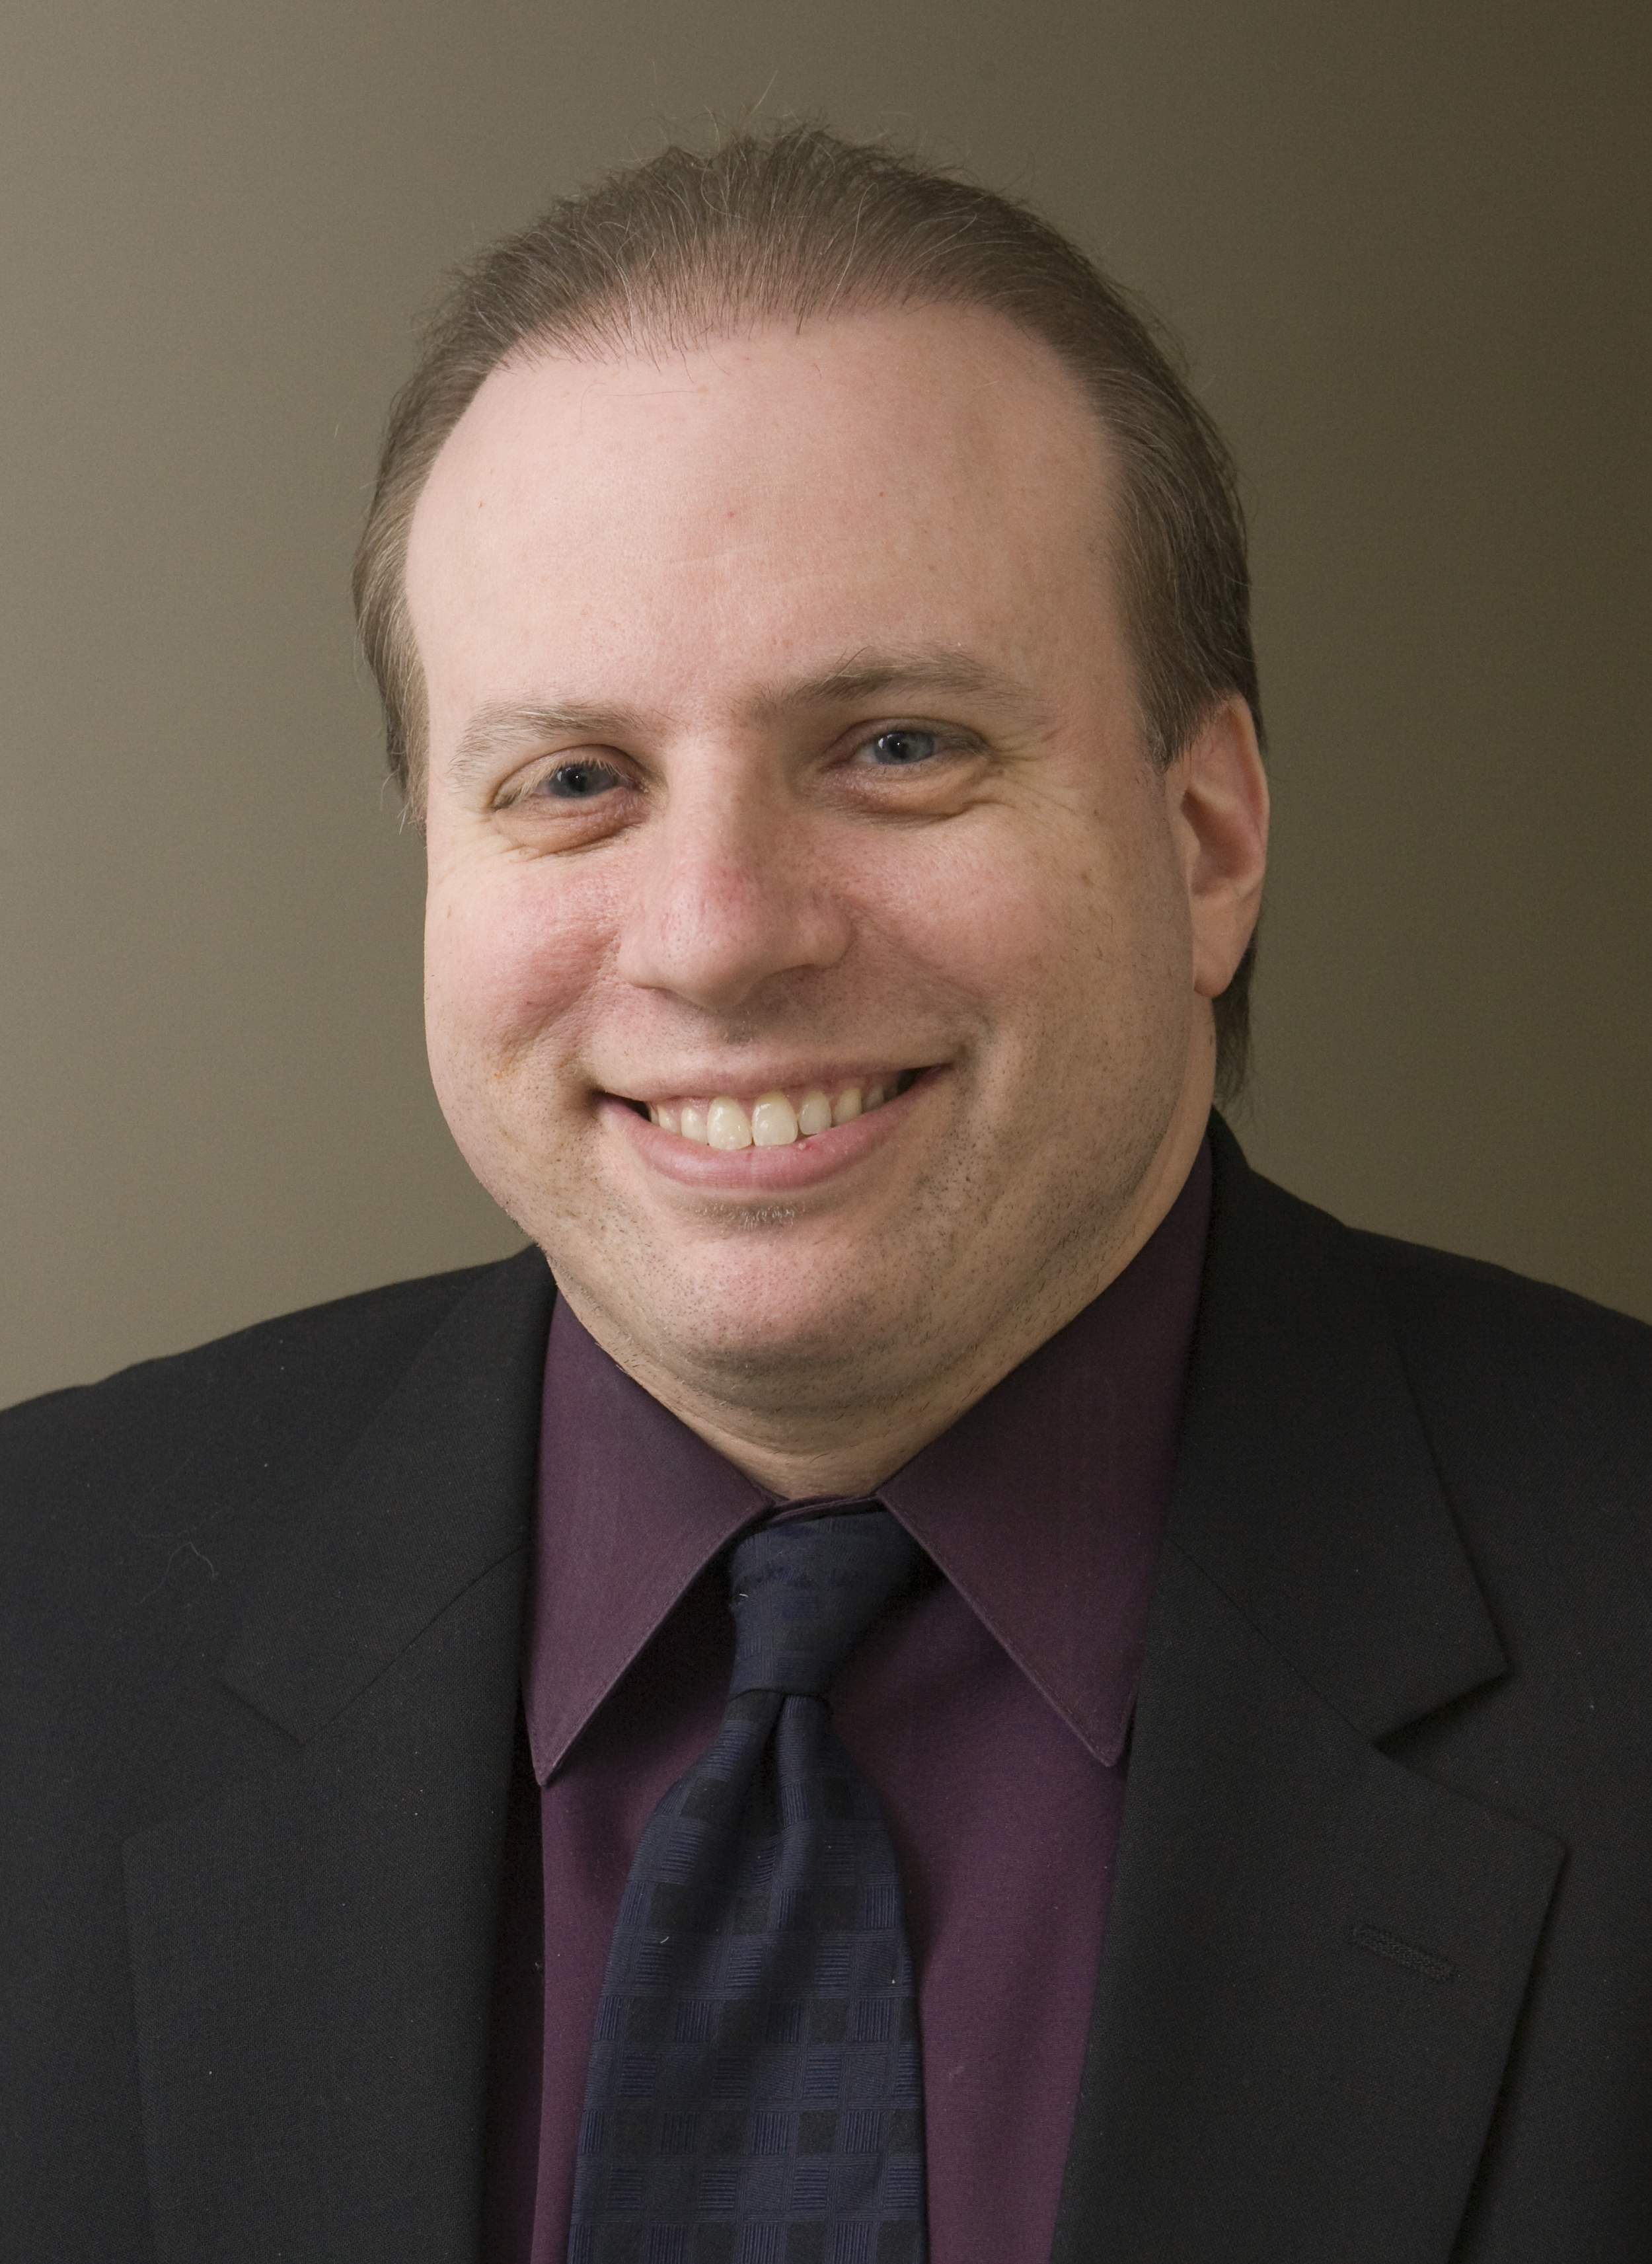 Marc Goldman is Executive Director of the Career Center at Yeshiva University.